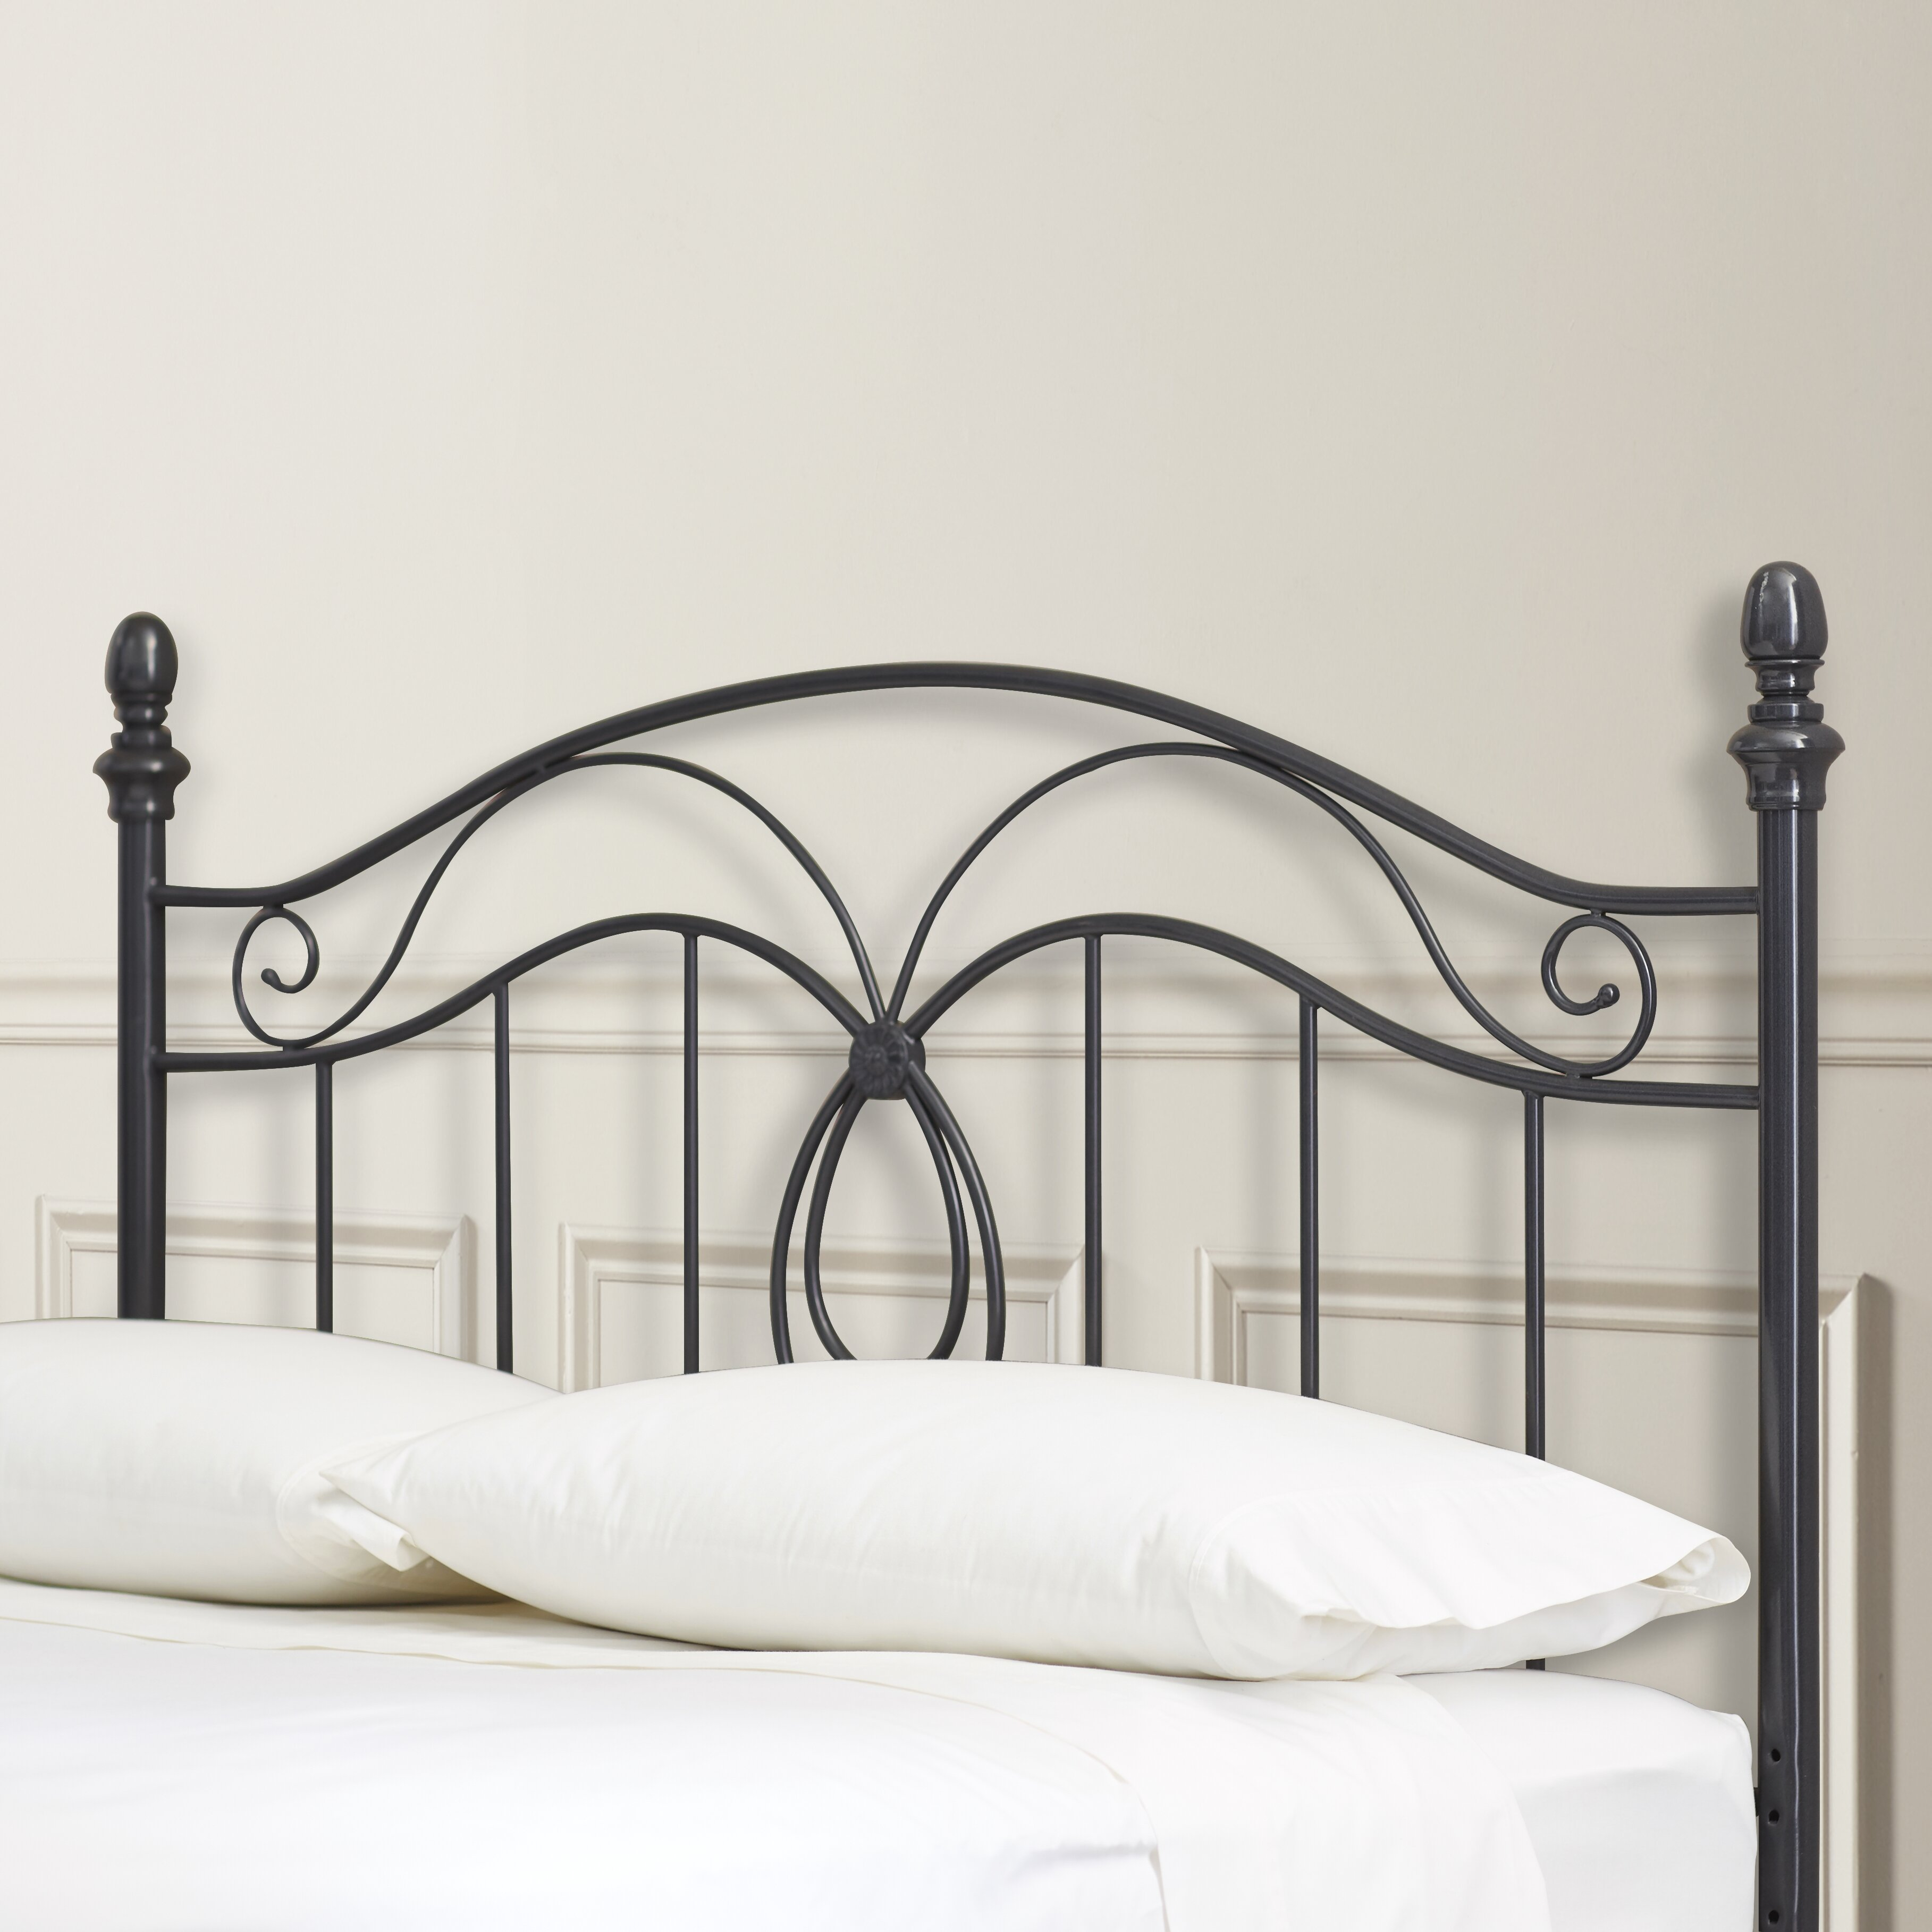 Metal headboard bed frame - Charlton Home Reg Crocker Bedroom Metal Headboard